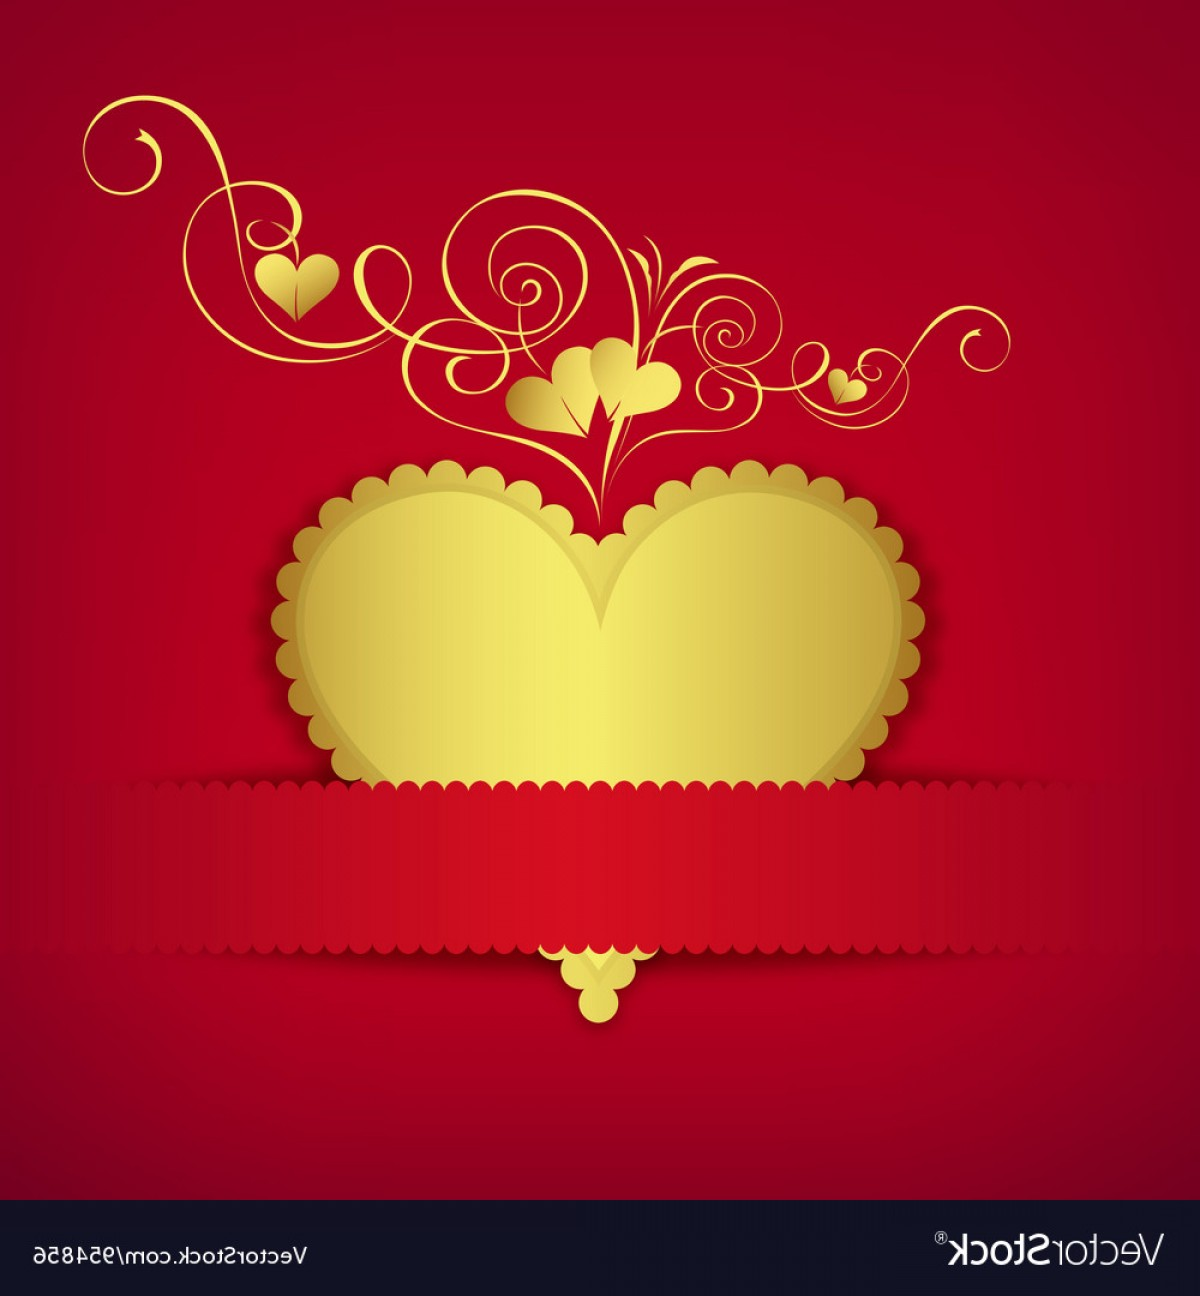 Heart Card Vector: Gold Heart Classic Valentine Day Greeting Card Vector